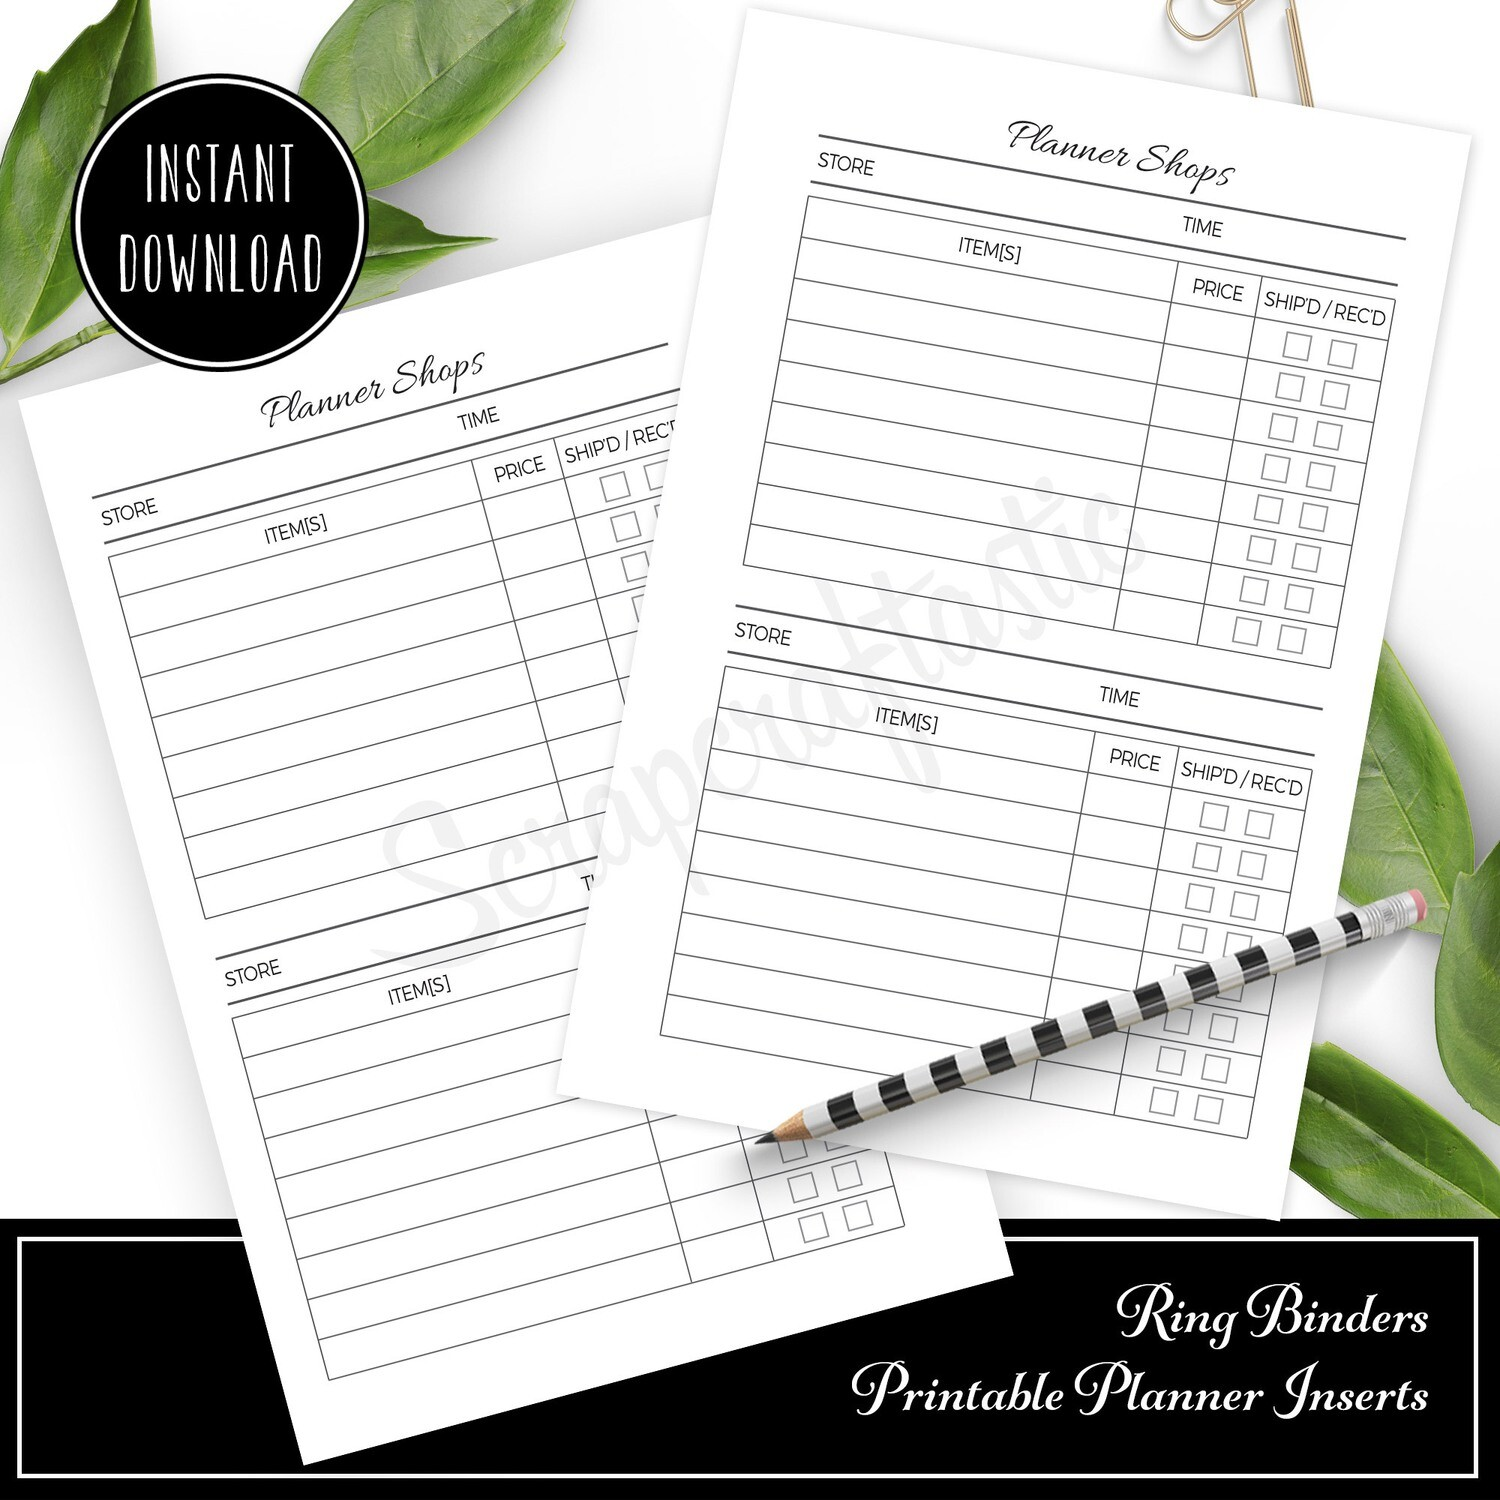 STANDARD TN - Black Friday Shopping Printable Planner Inserts